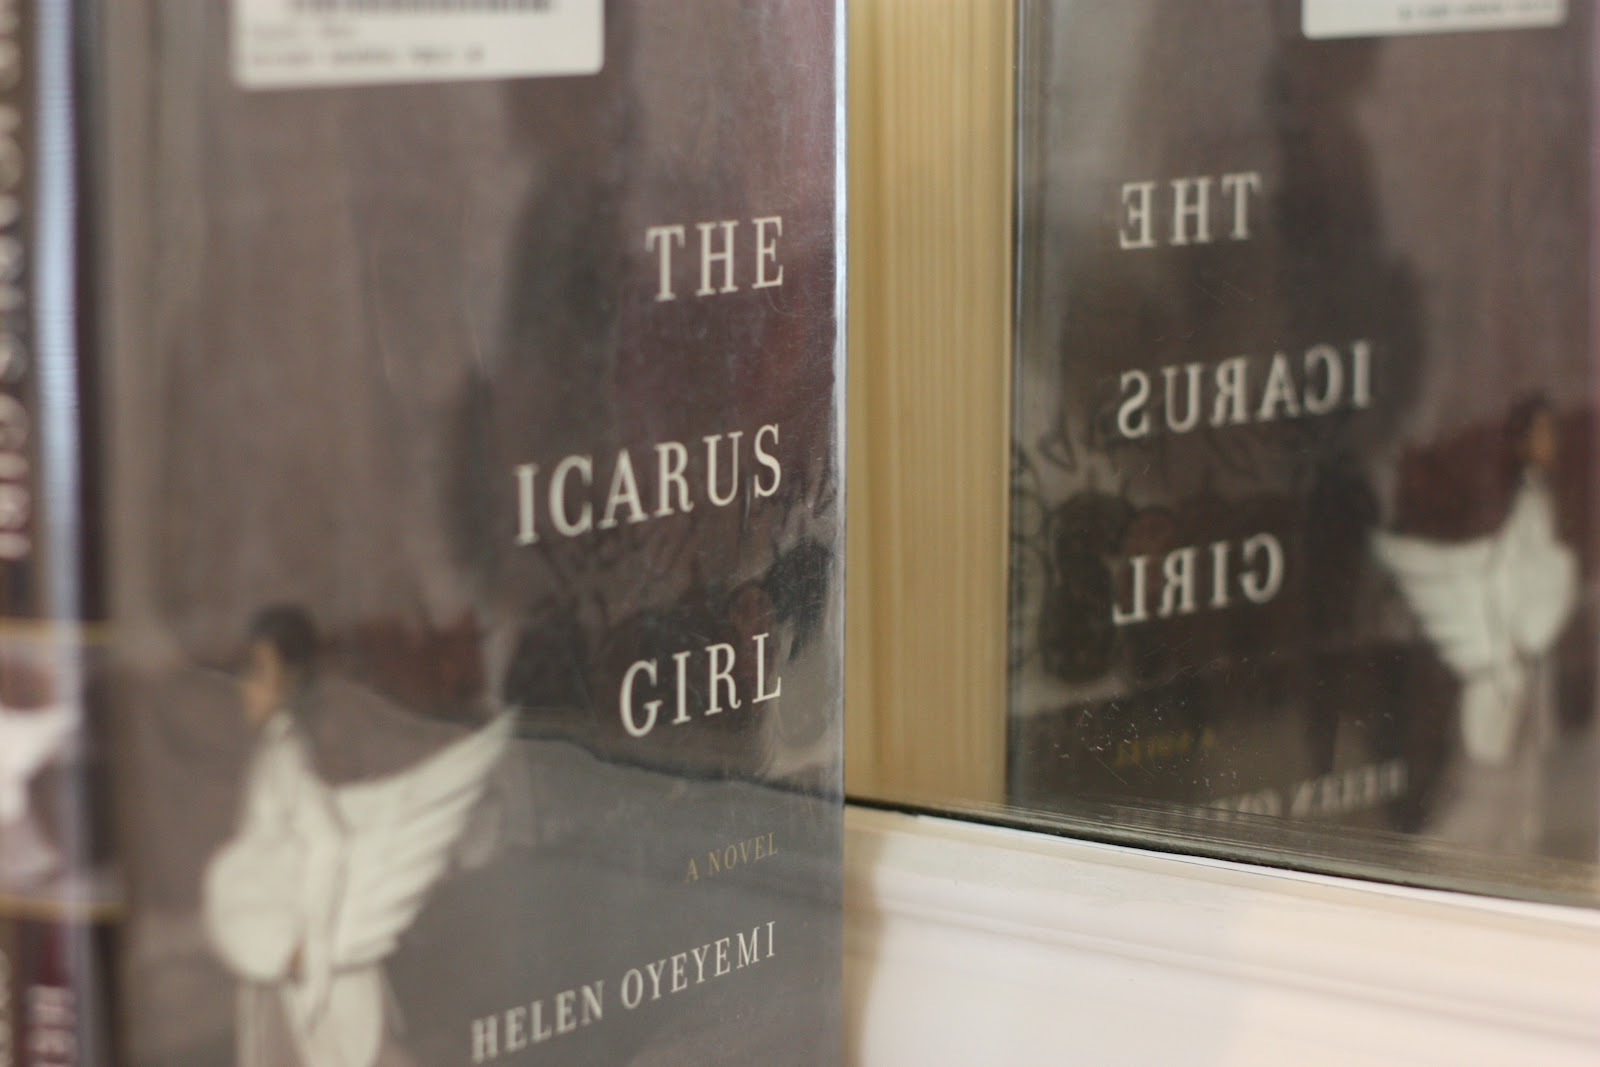 helen oyeyemi s the icarus girl review The icarus girl by helen oyeyemi  in 2007 bloomsbury published oyeyemi's second novel,  only logged in customers who have purchased this product may leave a review related products -13% add to wishlist.